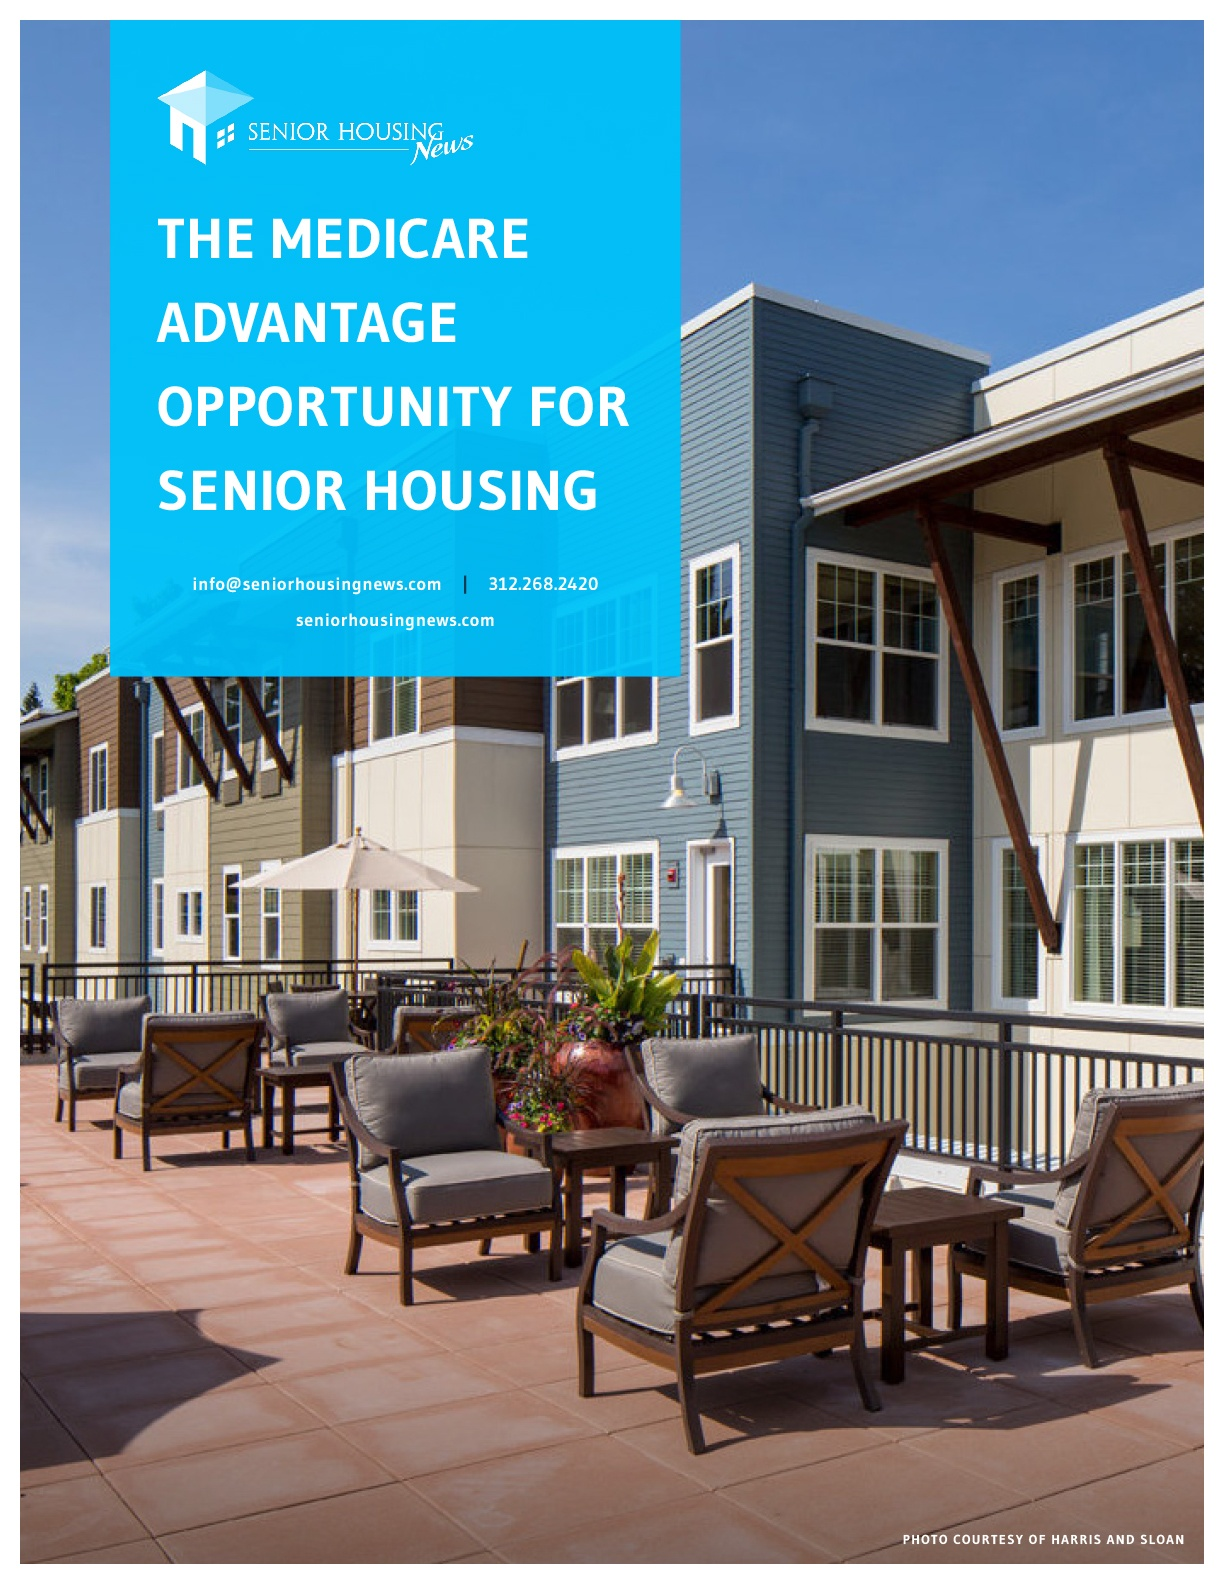 The Medicare Advantage Opportunity for Senior Housing